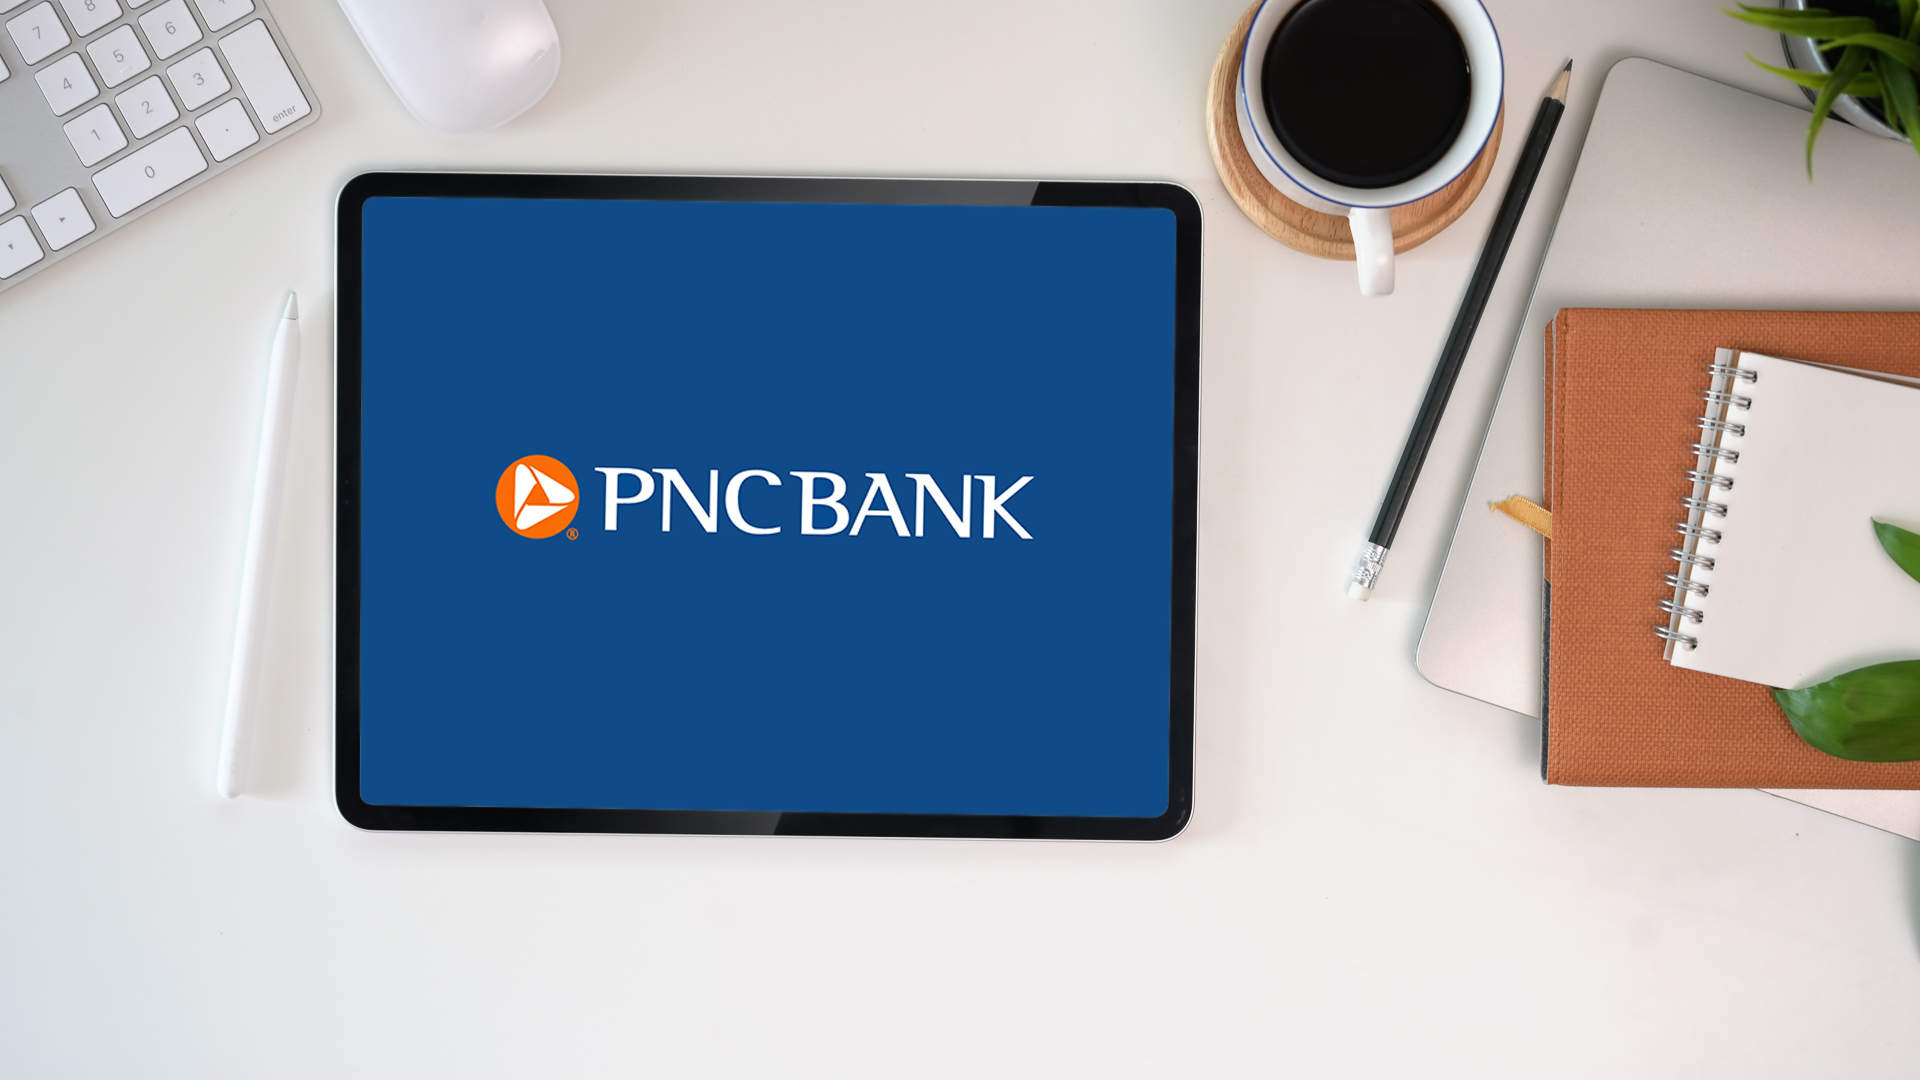 tablet with PNC bank mobile app